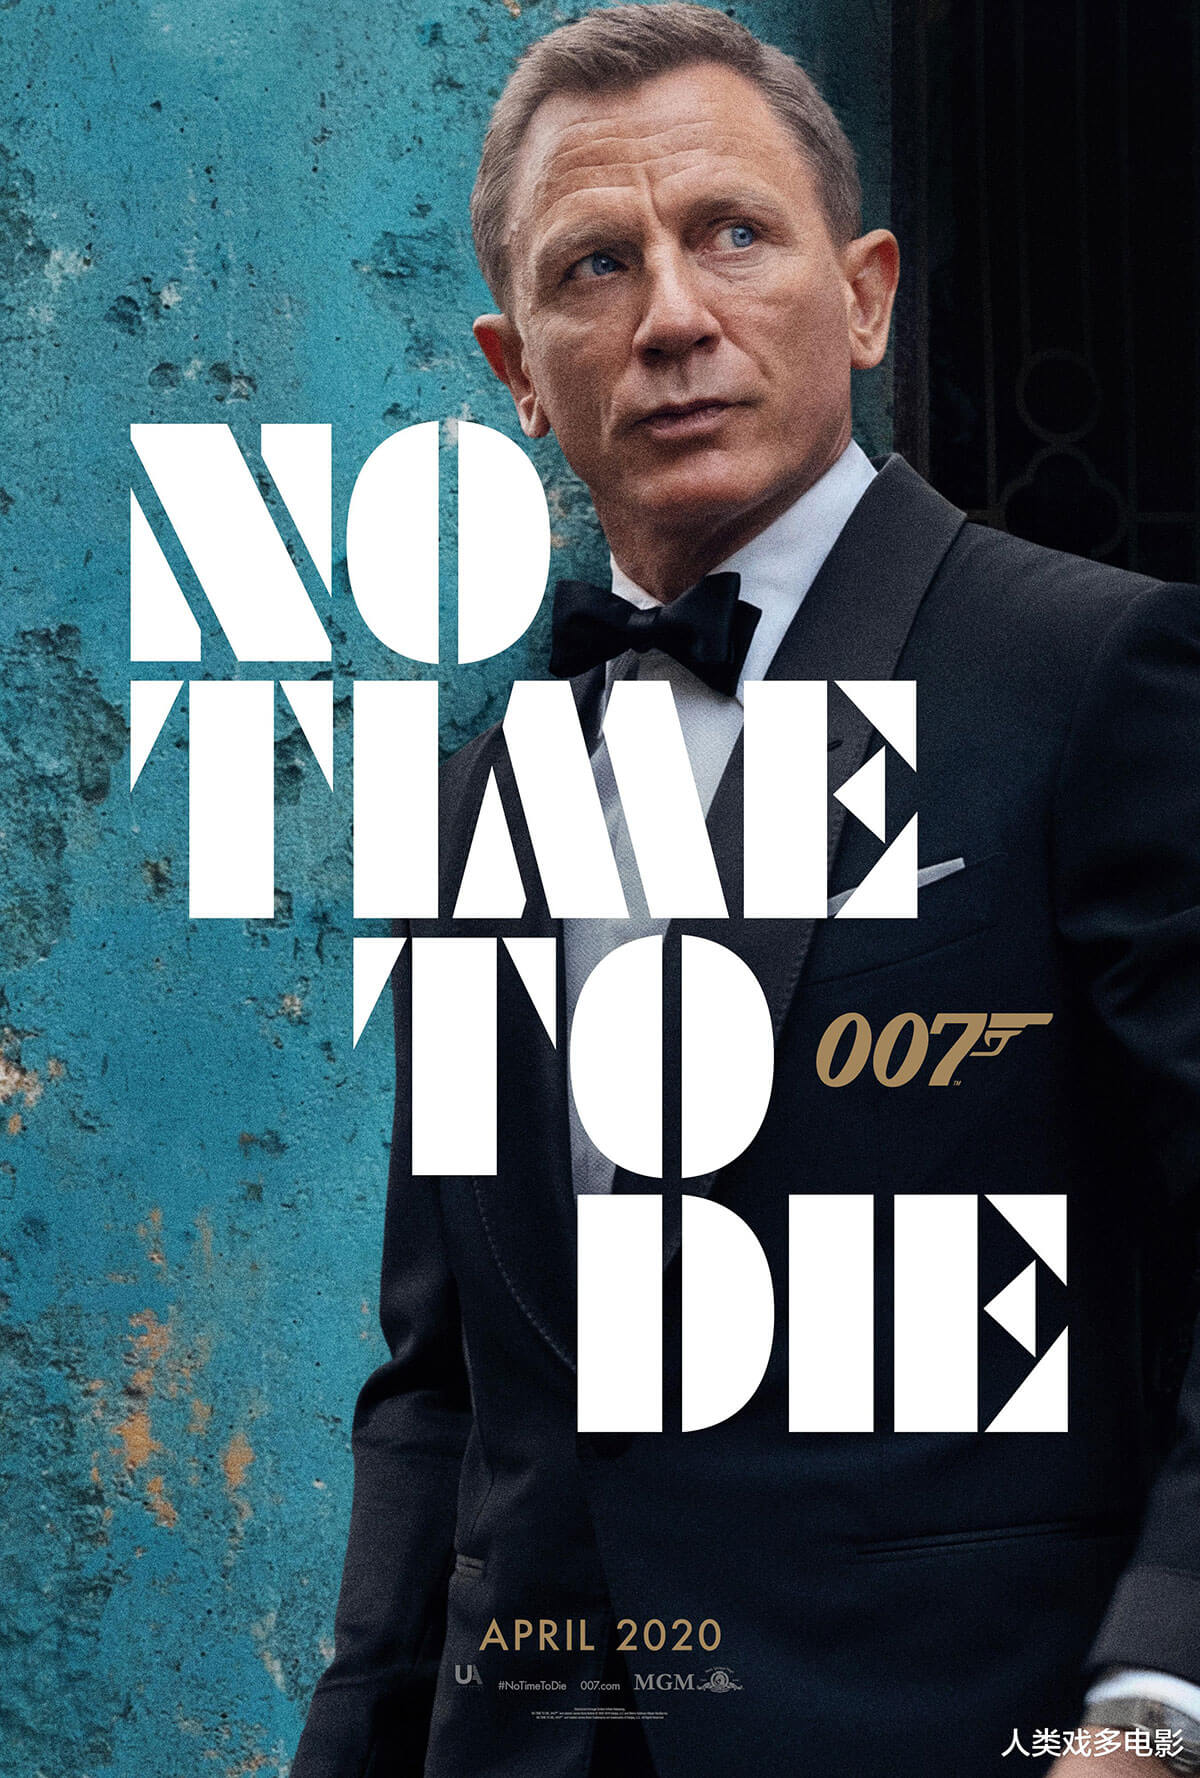 007 : No Time To Die in IMAX Movie Poster